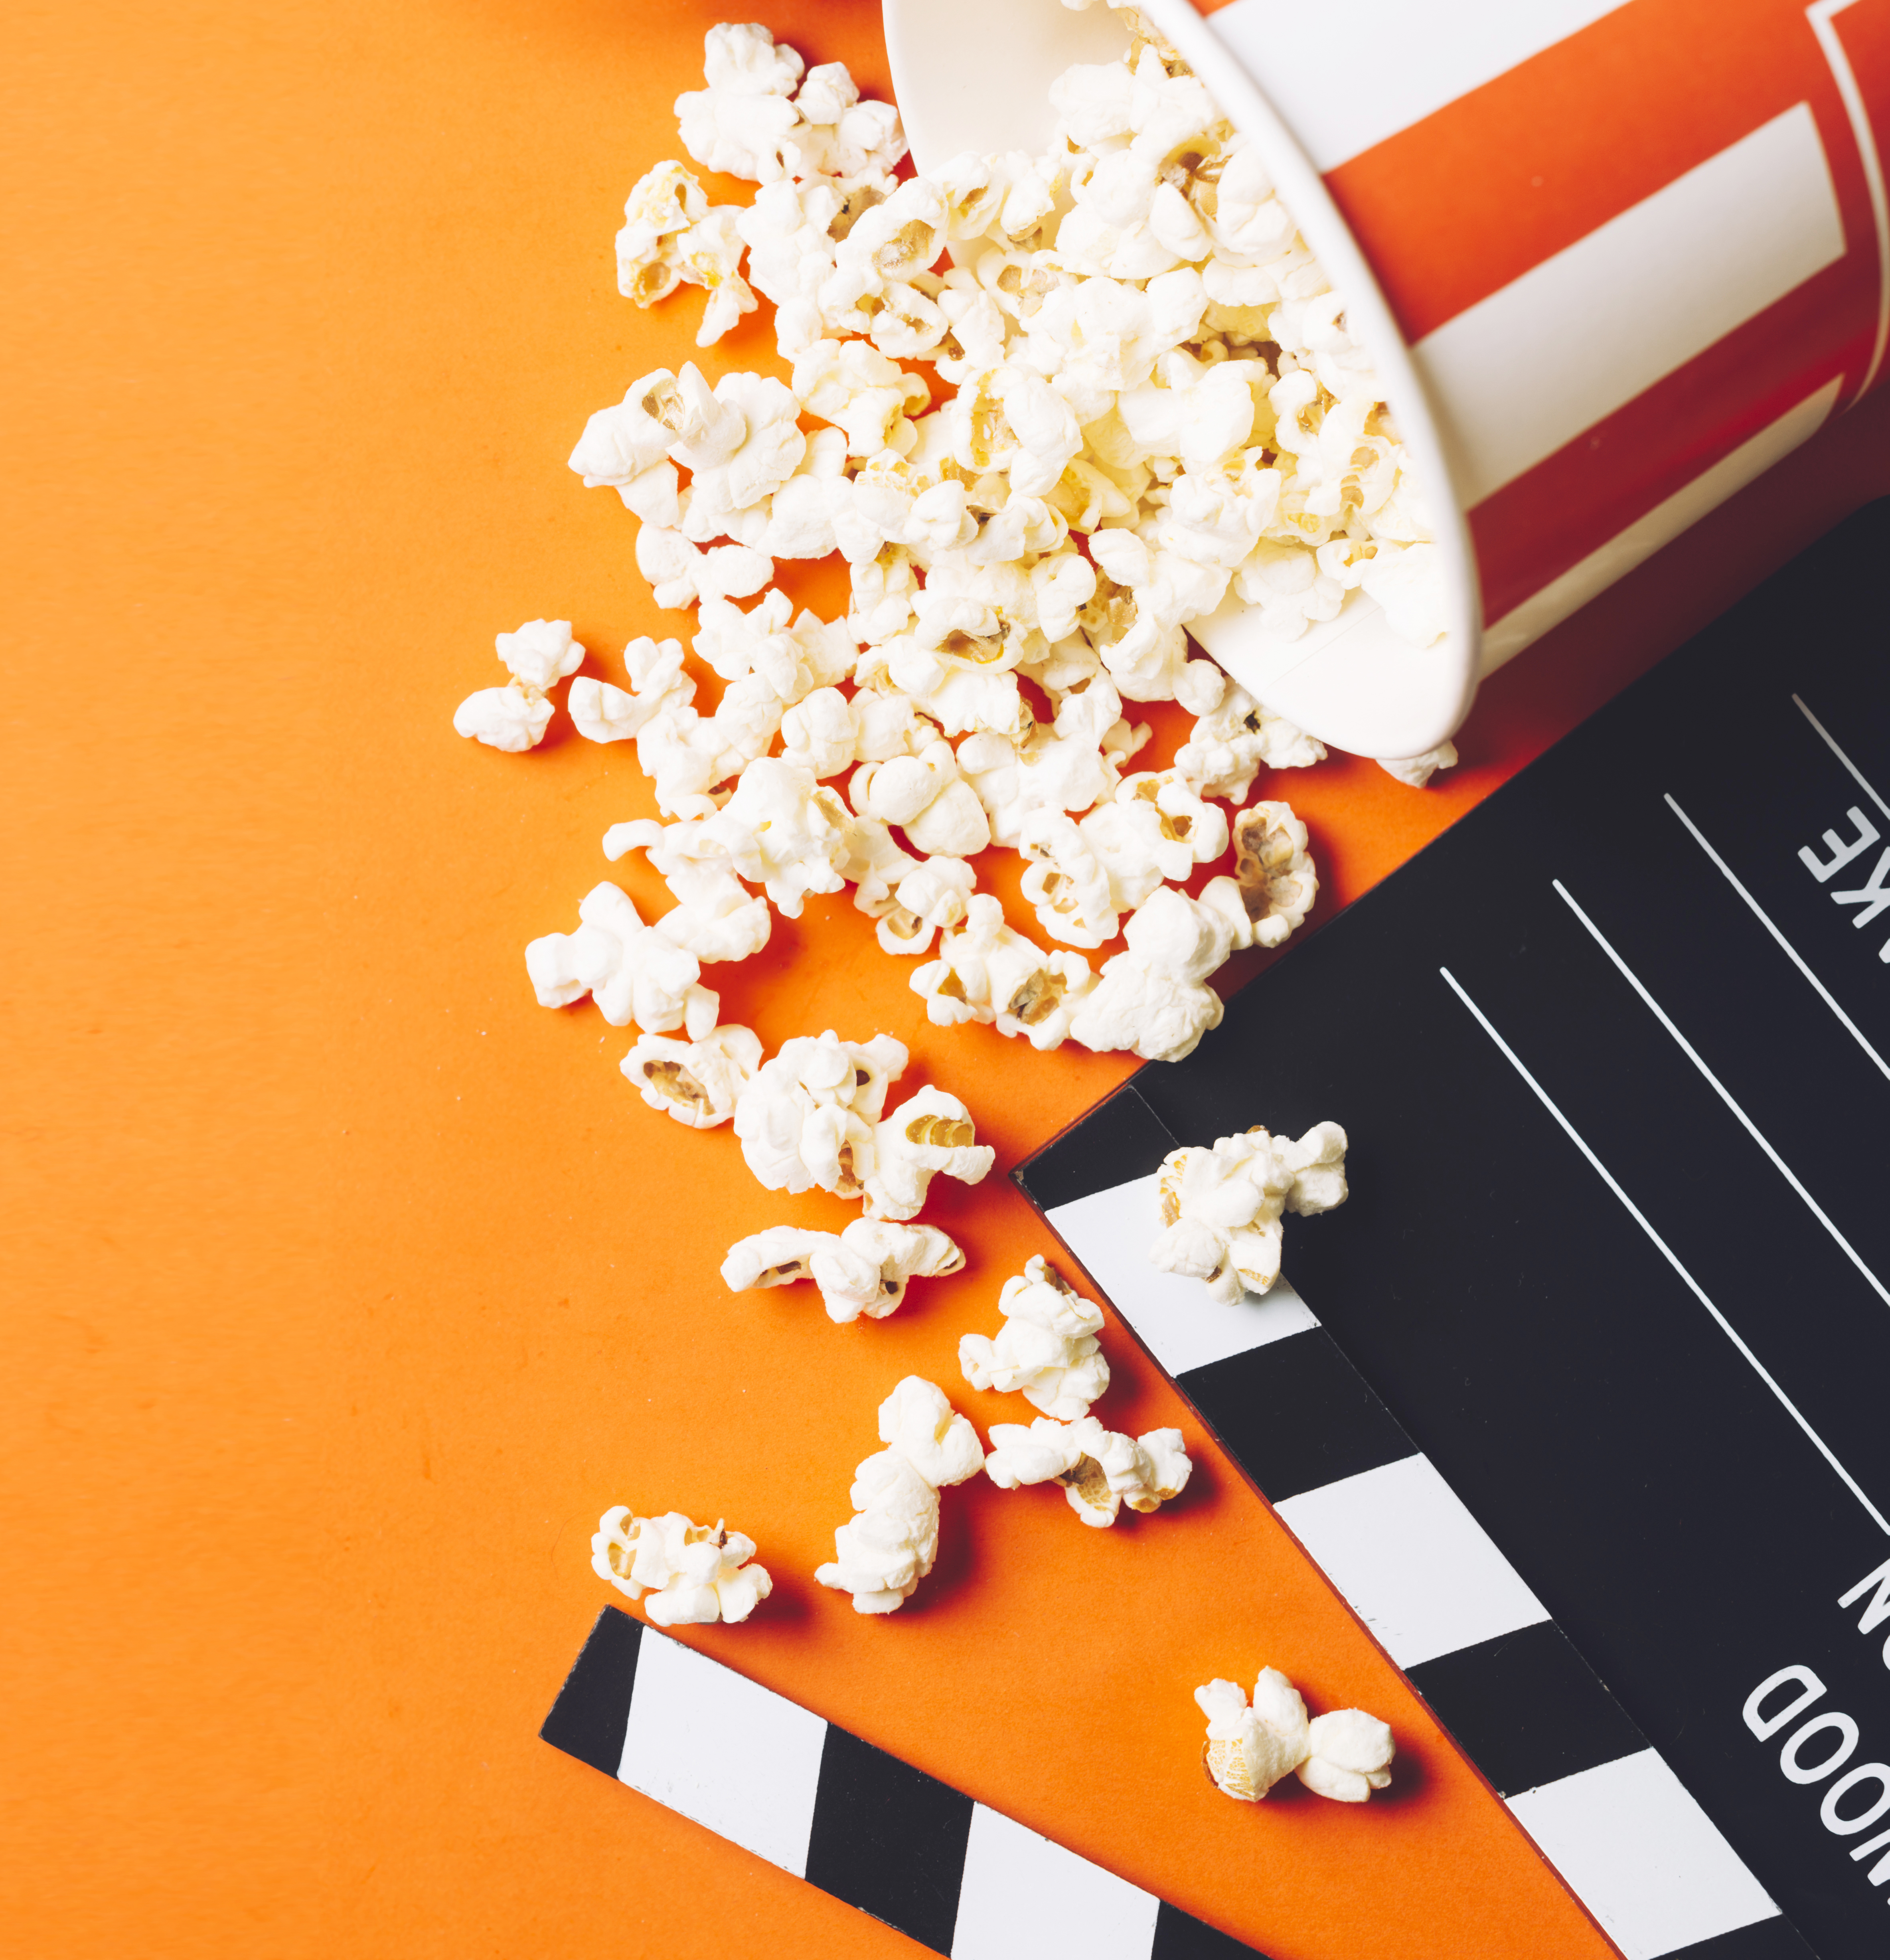 popcorn and movie clapperboard